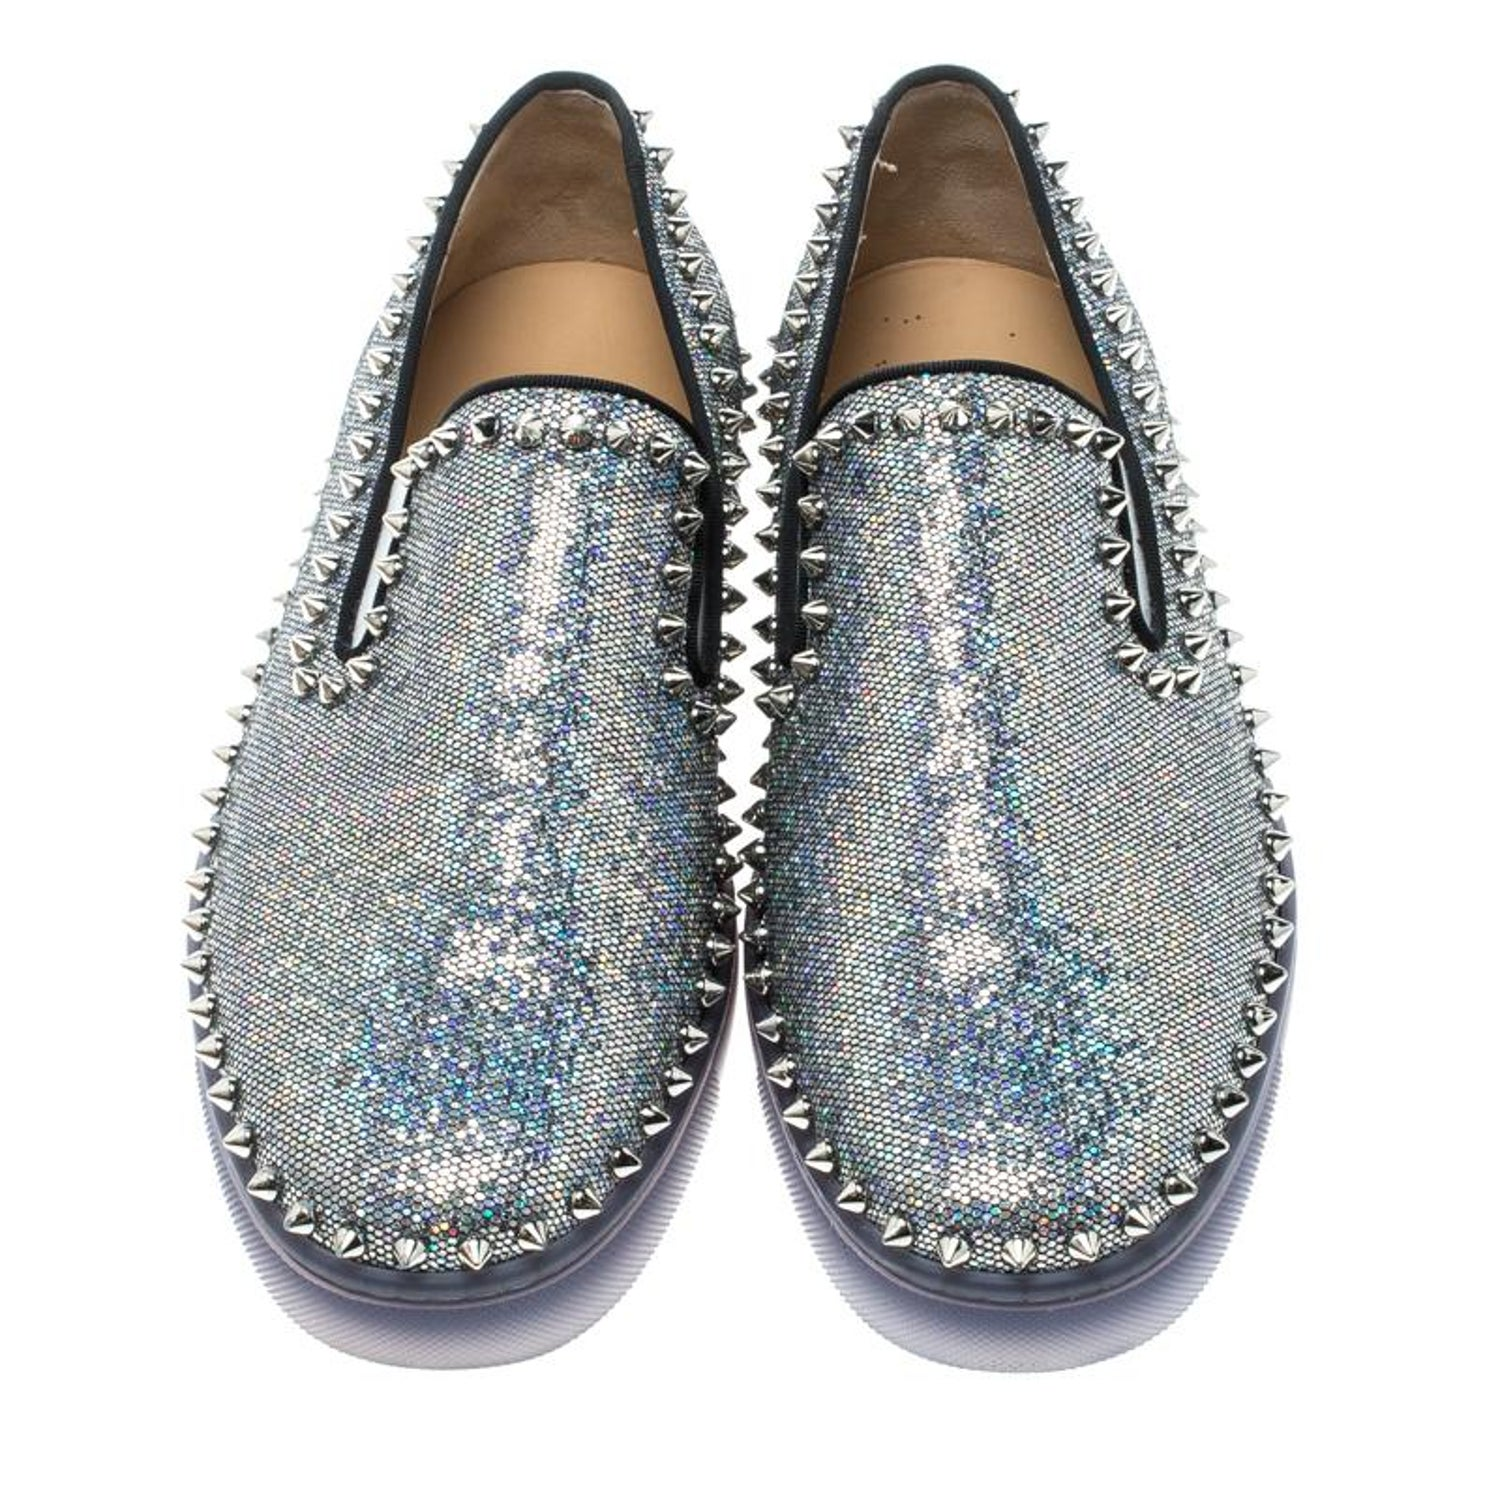 2842885629aac Christian Louboutin Glitter Disco Ball Spike Pik Boat Slip On Sneakers Size  42 For Sale at 1stdibs